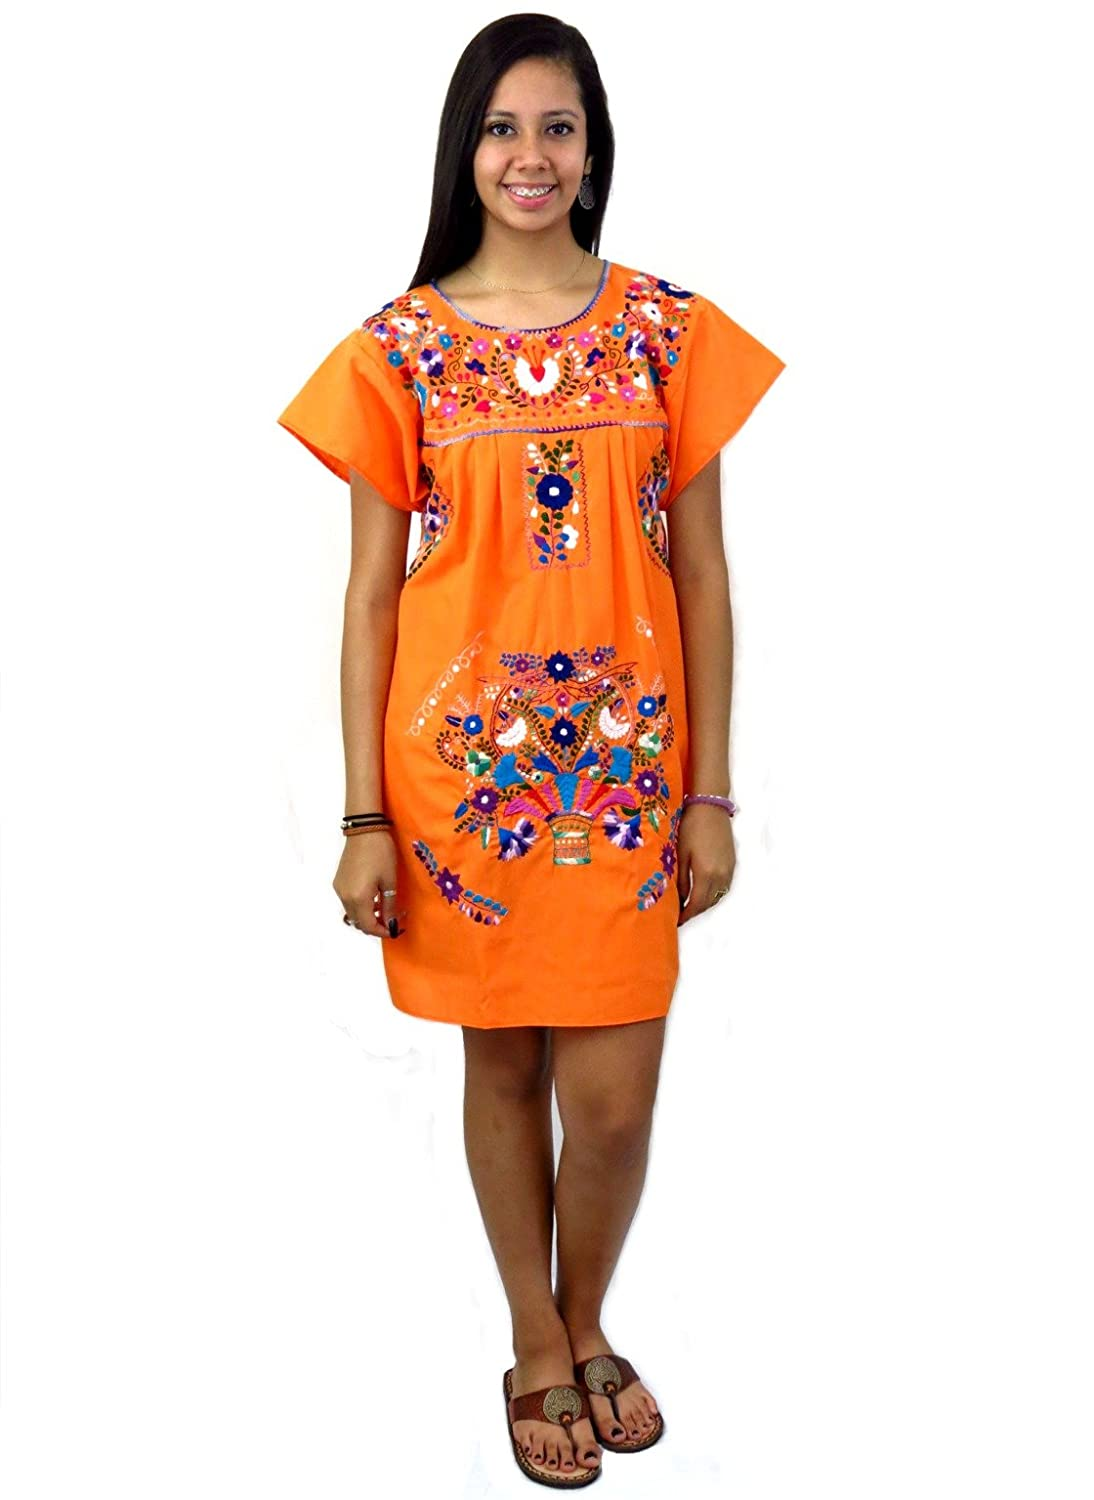 Embroidered Orange Mexican Puebla Tunic Dress - DeluxeAdultCostumes.com